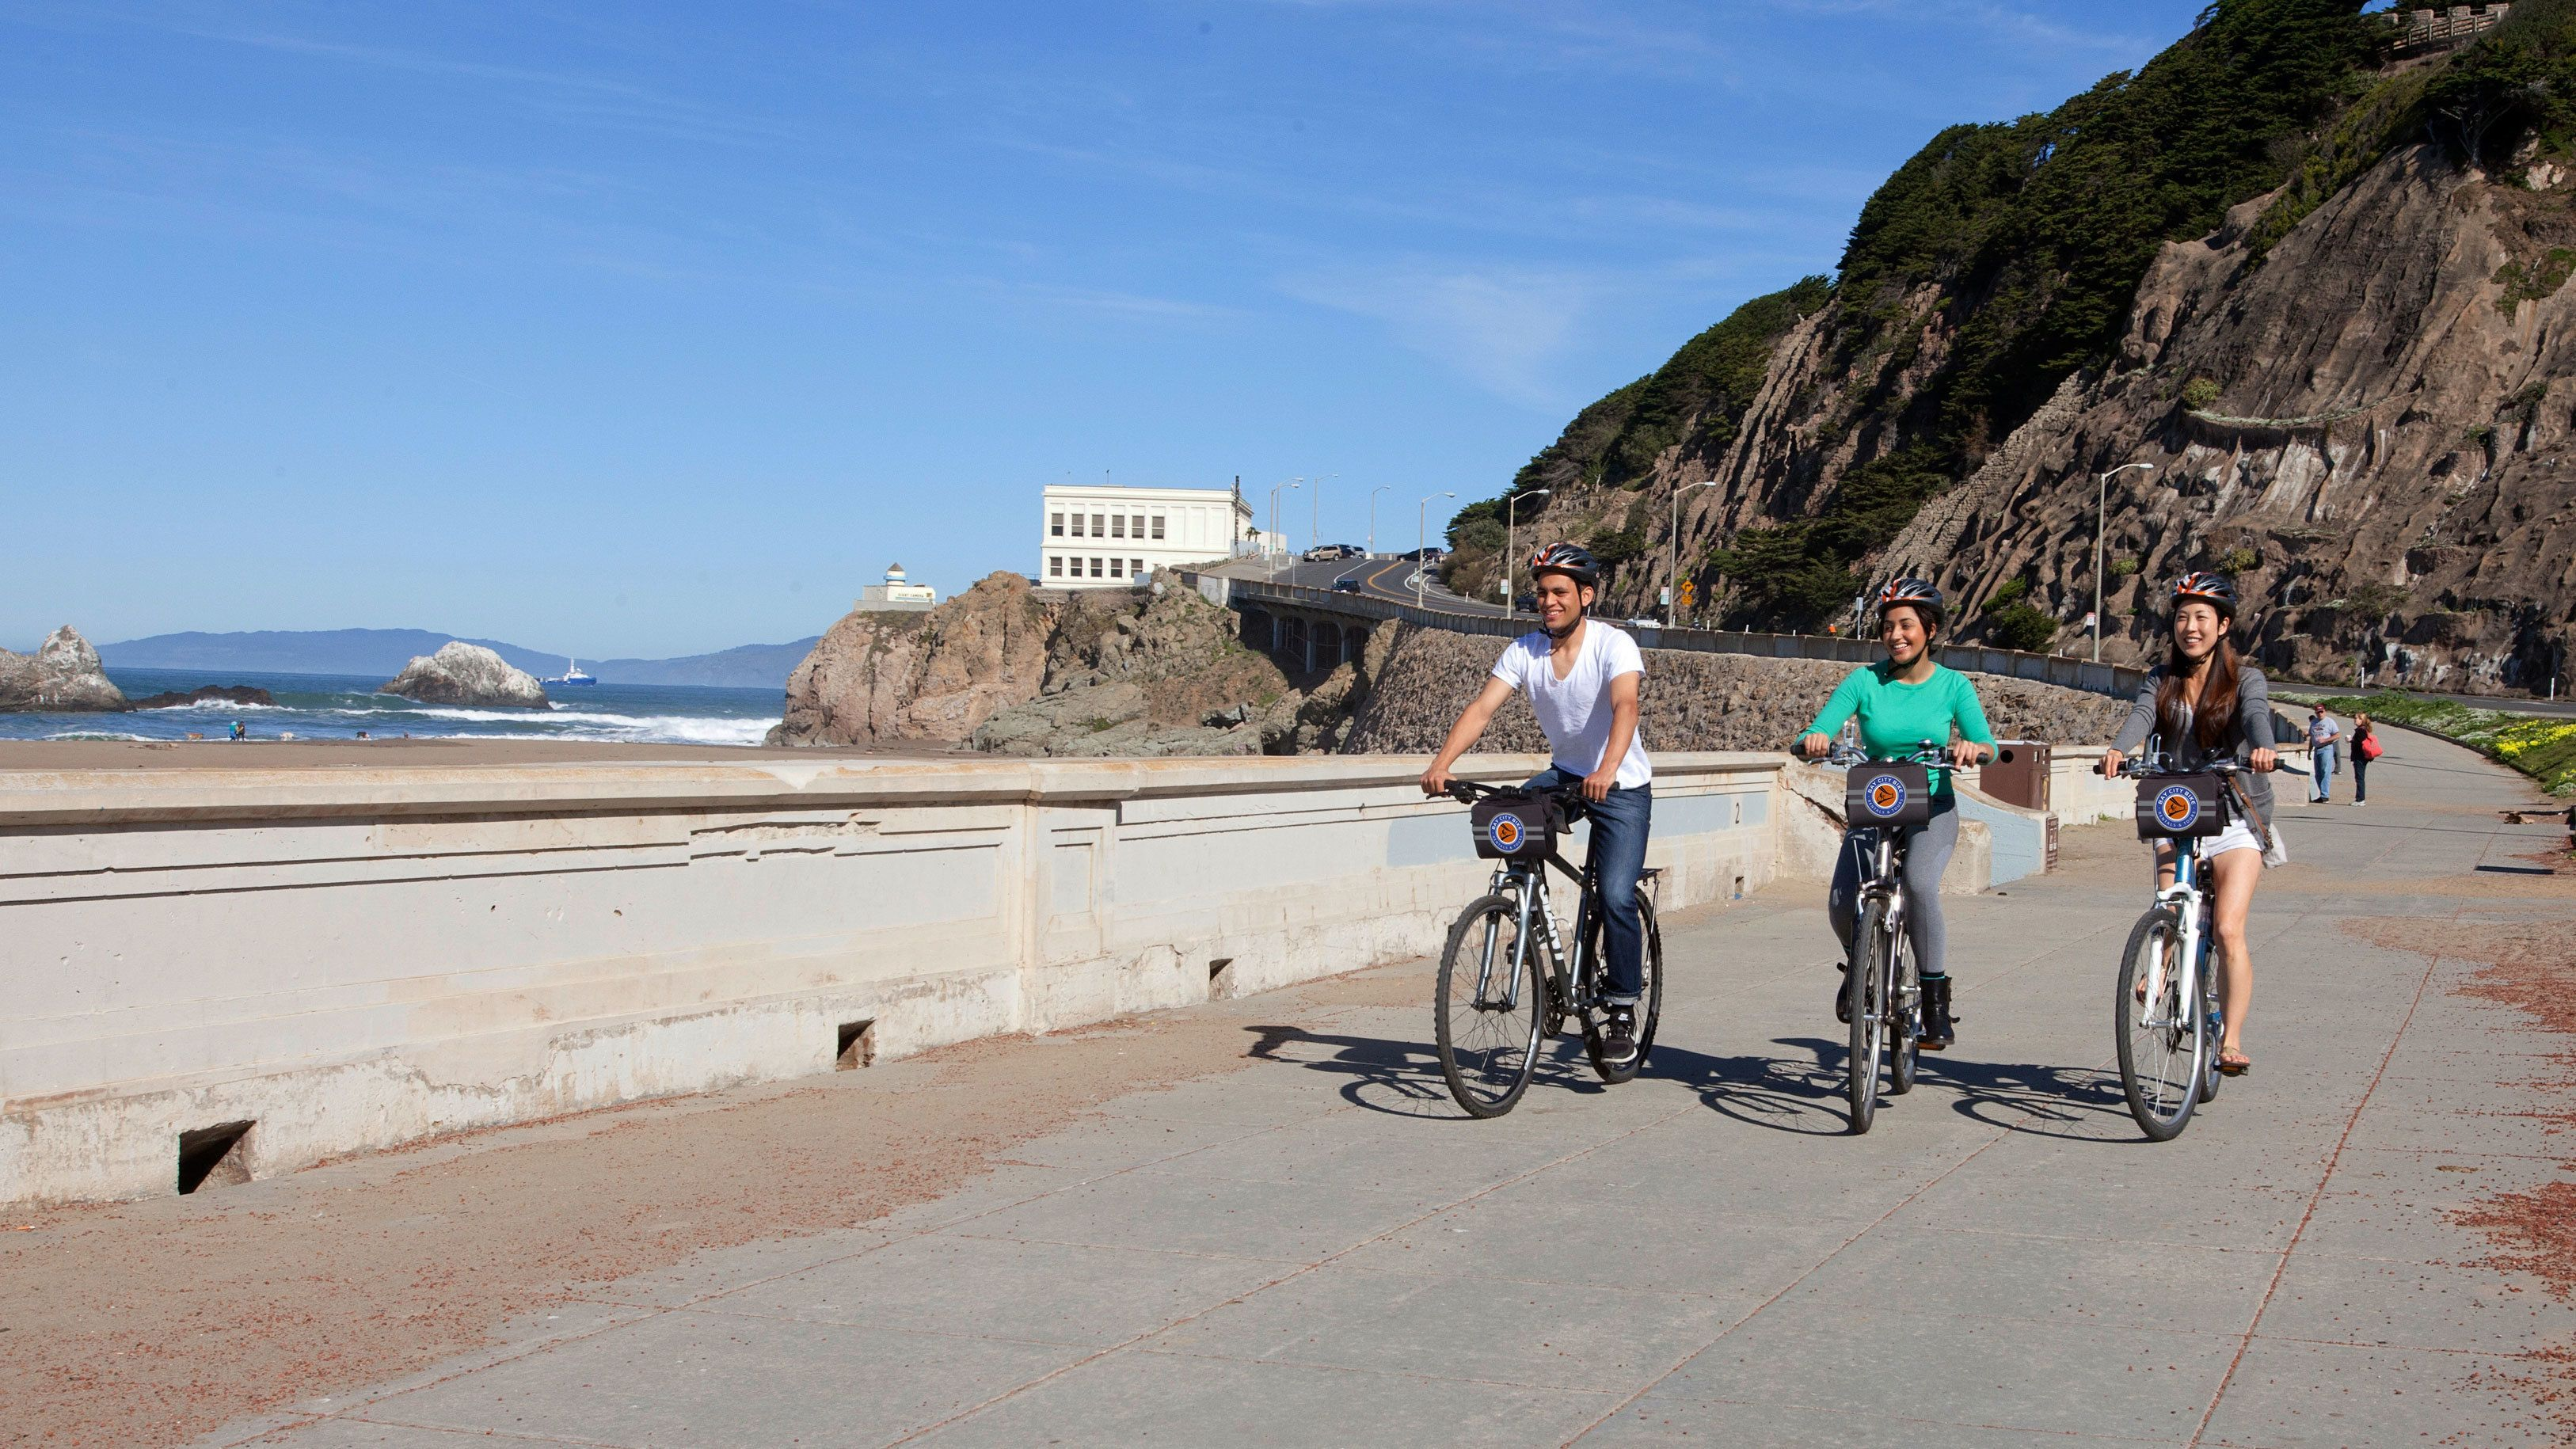 2-Day Combo: Bike Tour of Golden Gate Park & Admission to Alcatraz Island